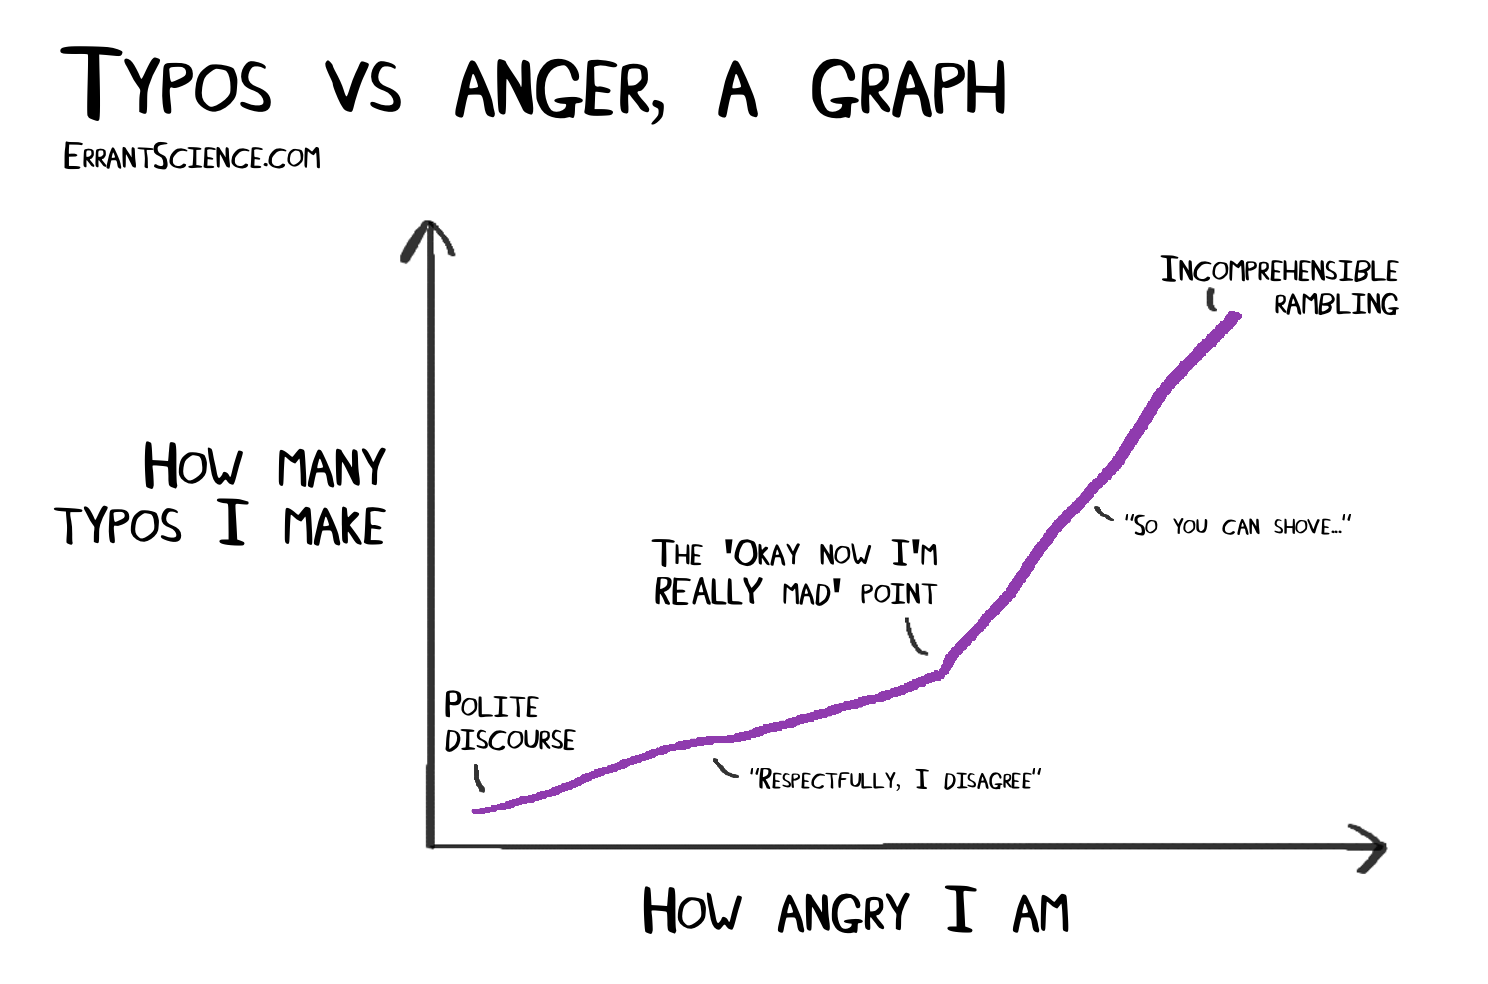 Anger vs typos